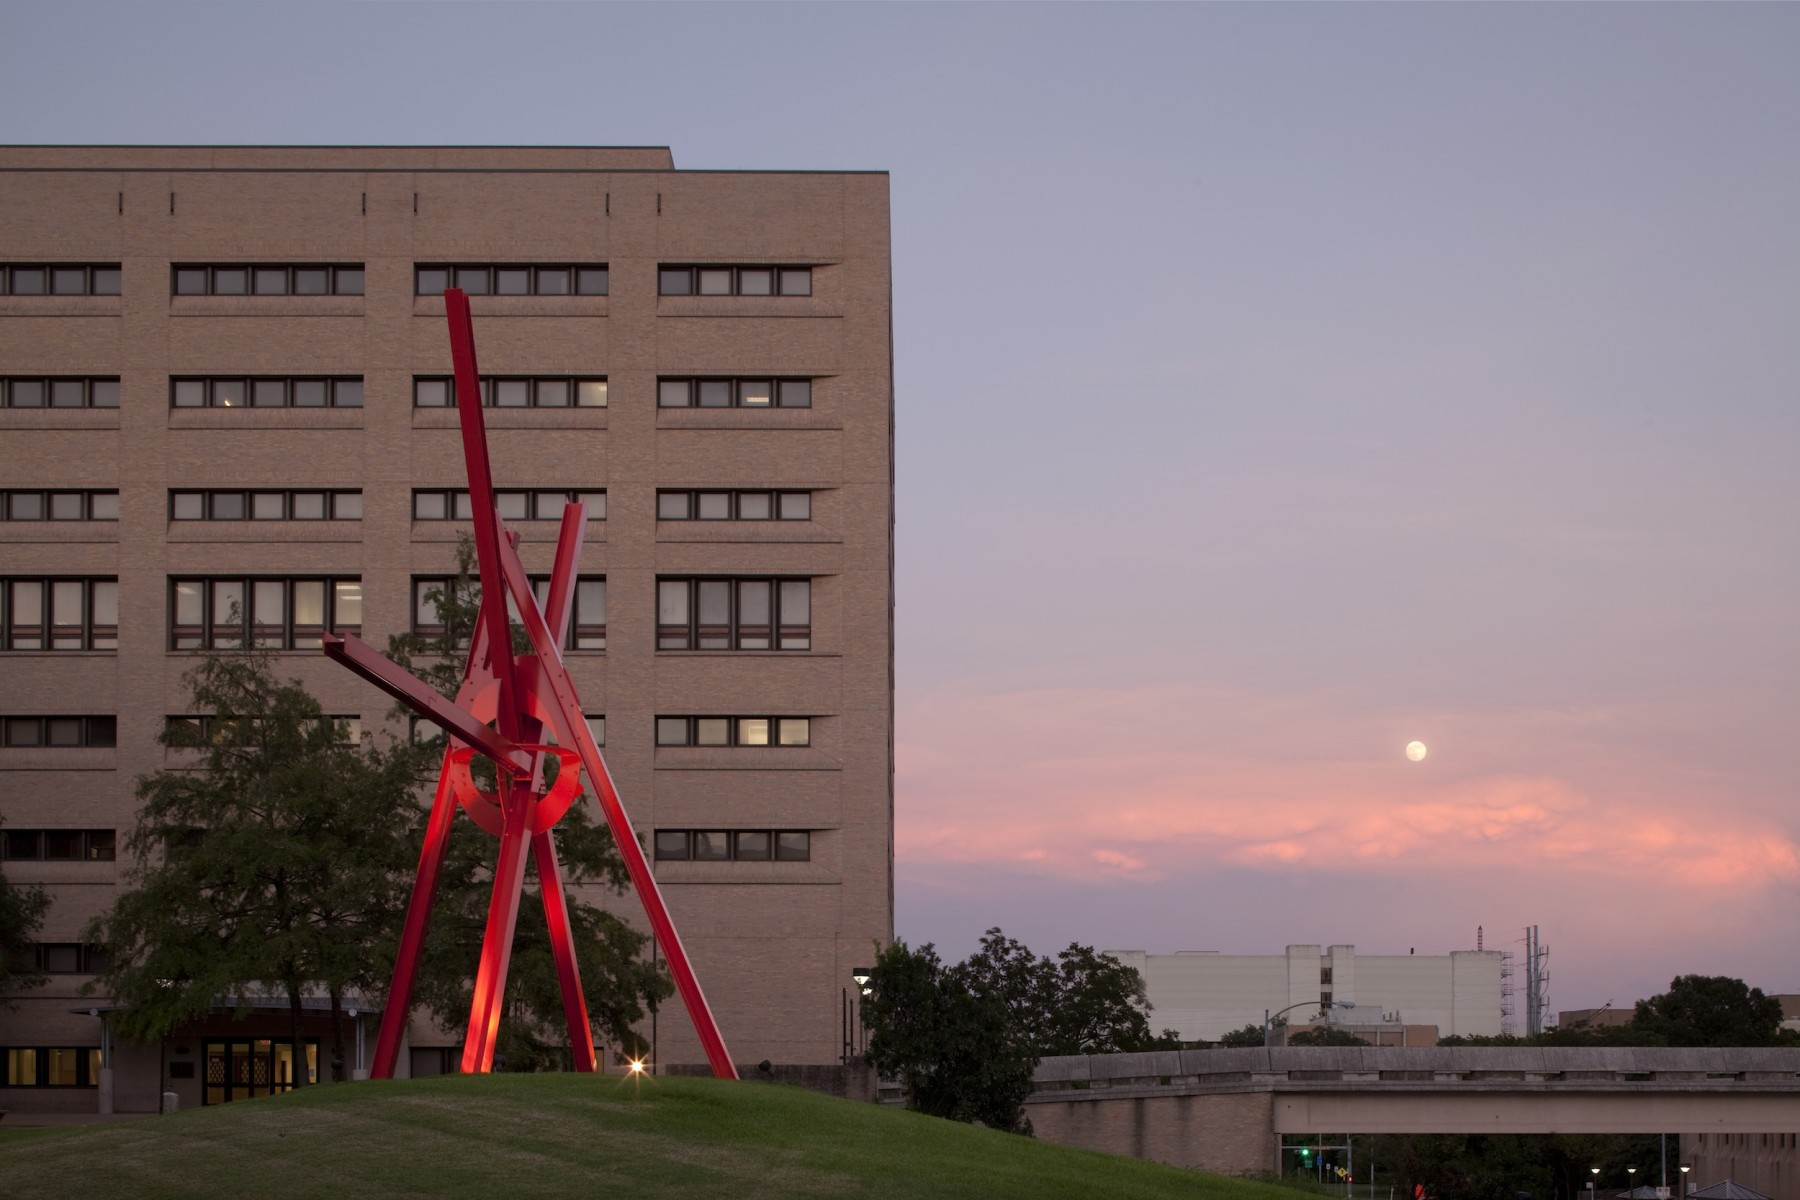 A large sculpture with the sunset in the background